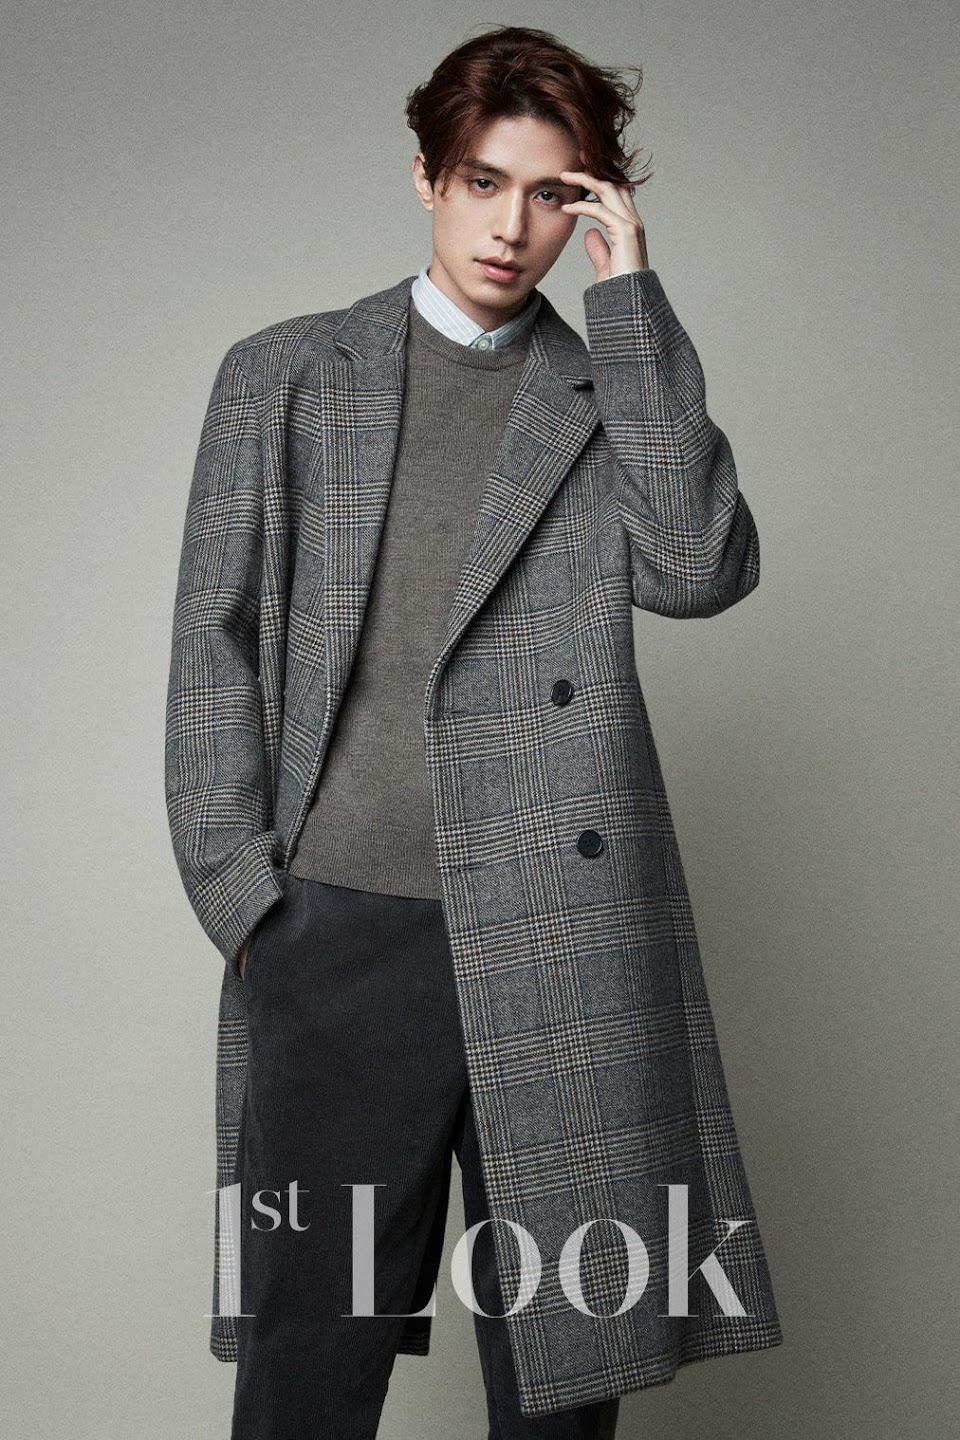 lee dong wook1